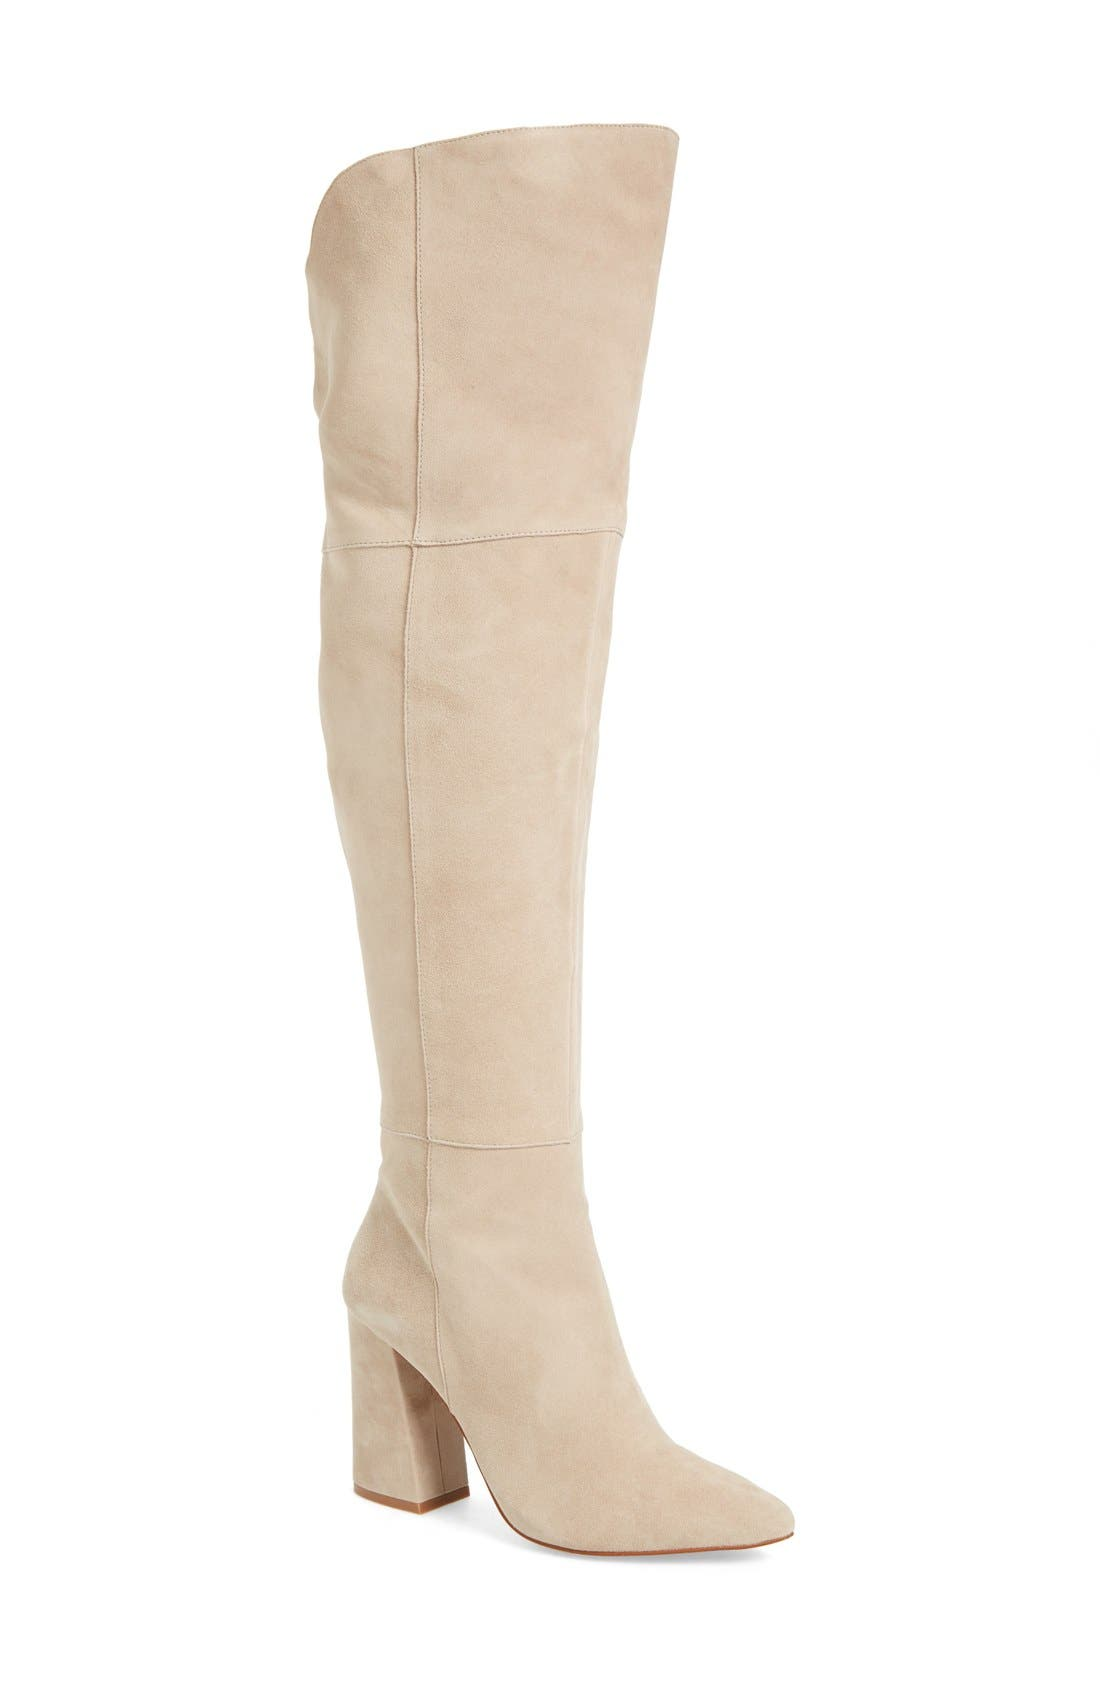 Main Image - Kristin Cavallari 'Saffron' Over the Knee Boot (Women)